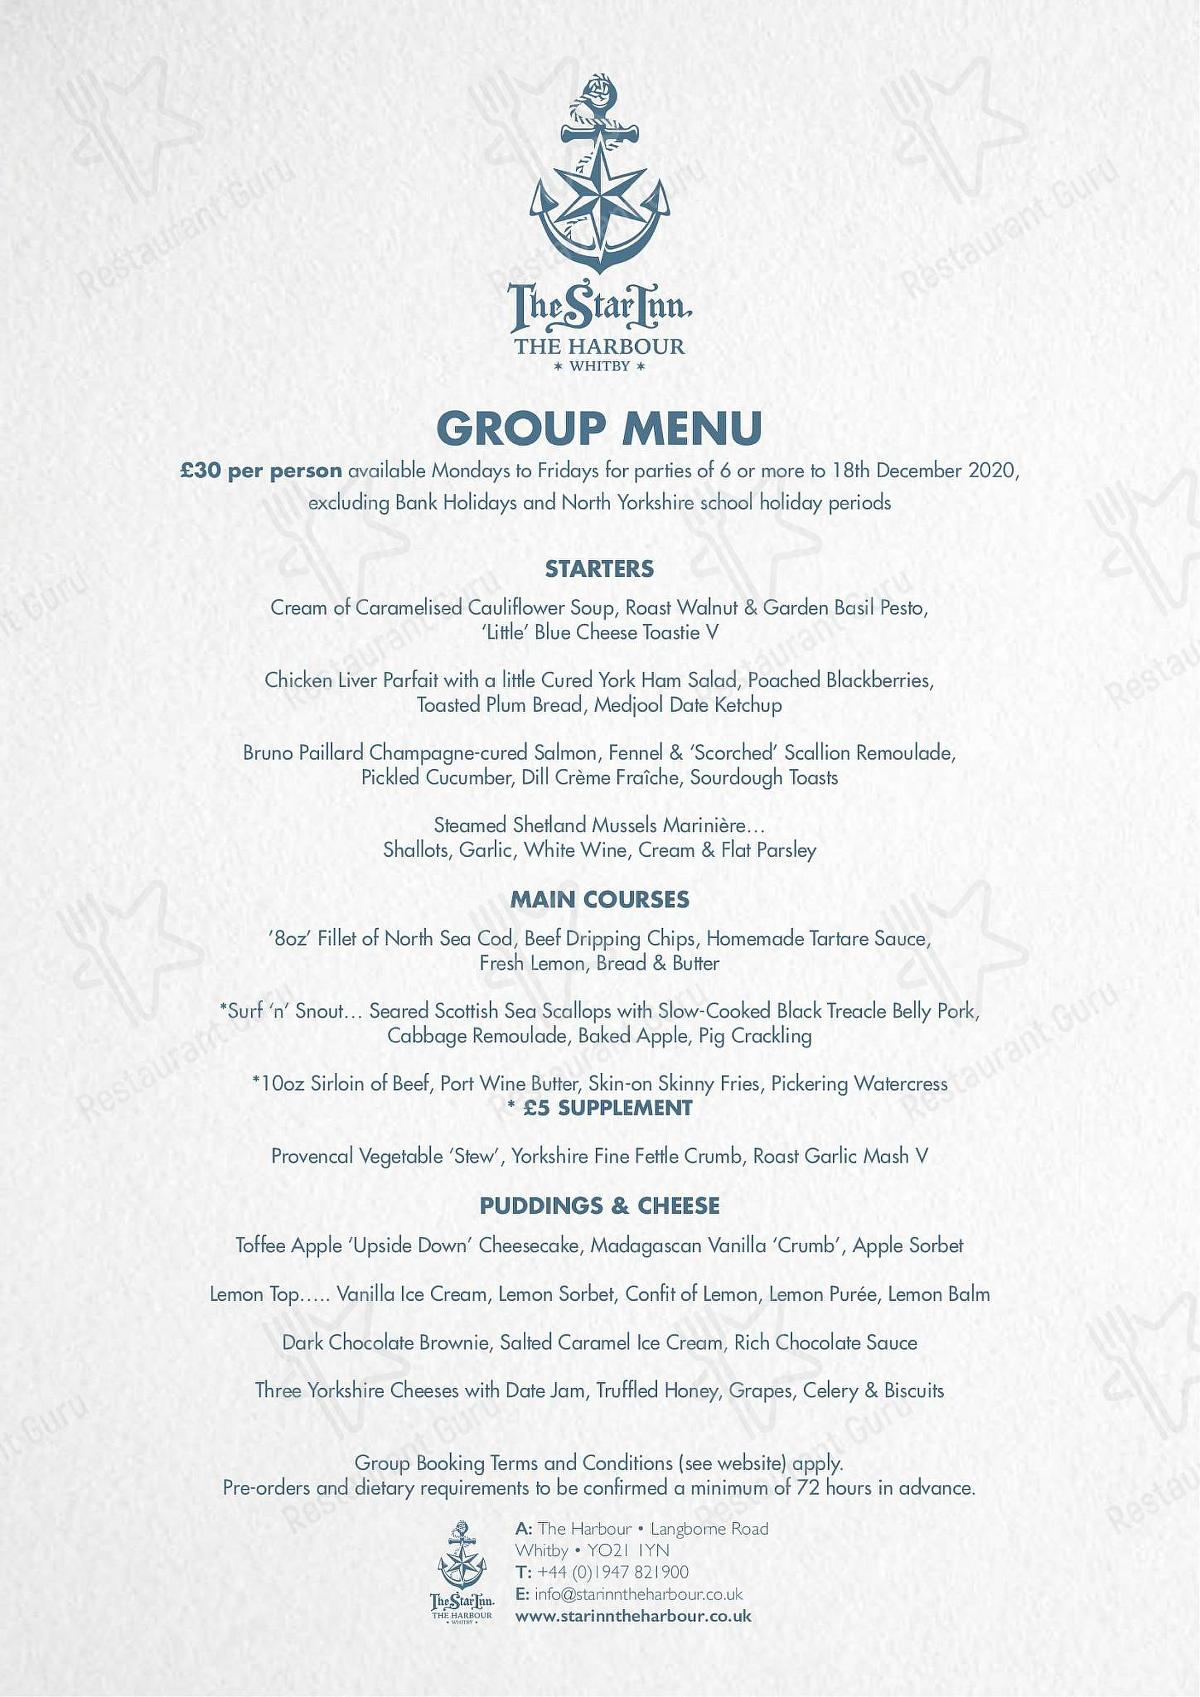 The Star Inn The Harbour menu - dishes and beverages